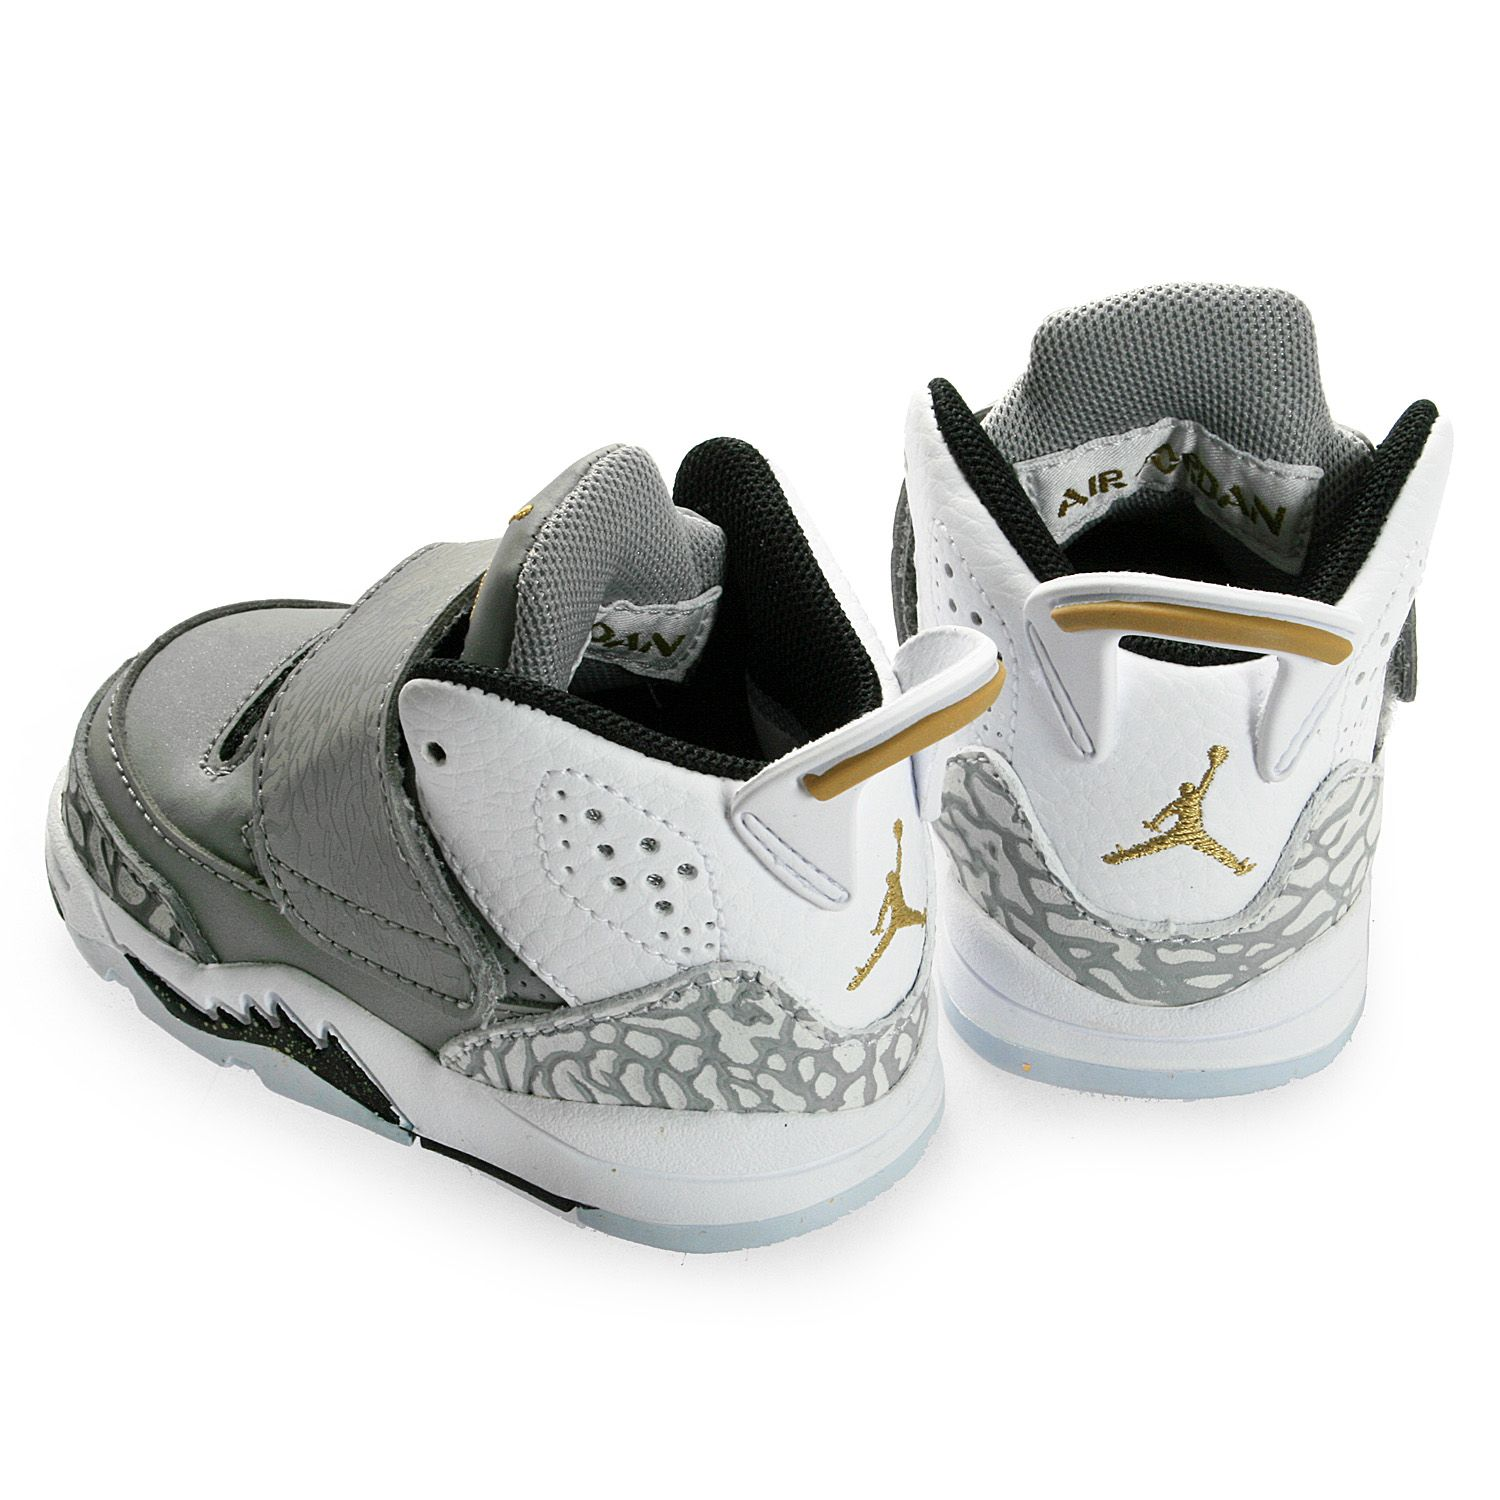 nike jordan shoes for baby boy white suit 818045